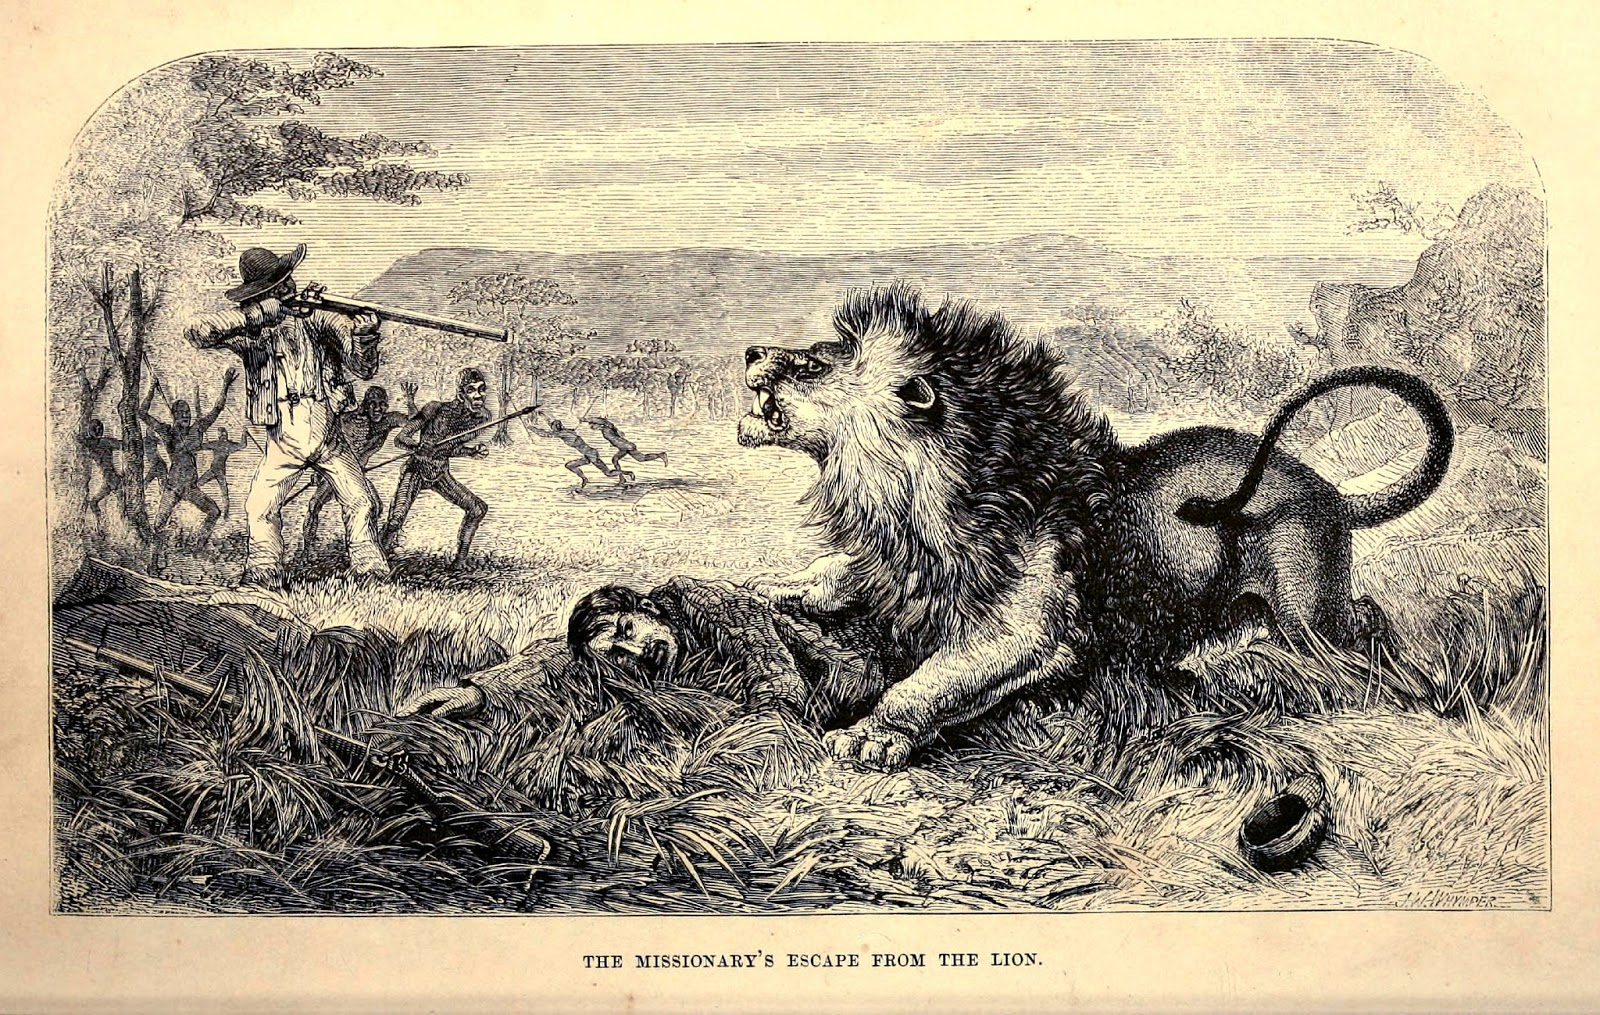 the life and mission of david livingstone This episode and the next of missionary talks will be a biography of the life of david livingstone, the great missionary explorer of africa after these two episodes.